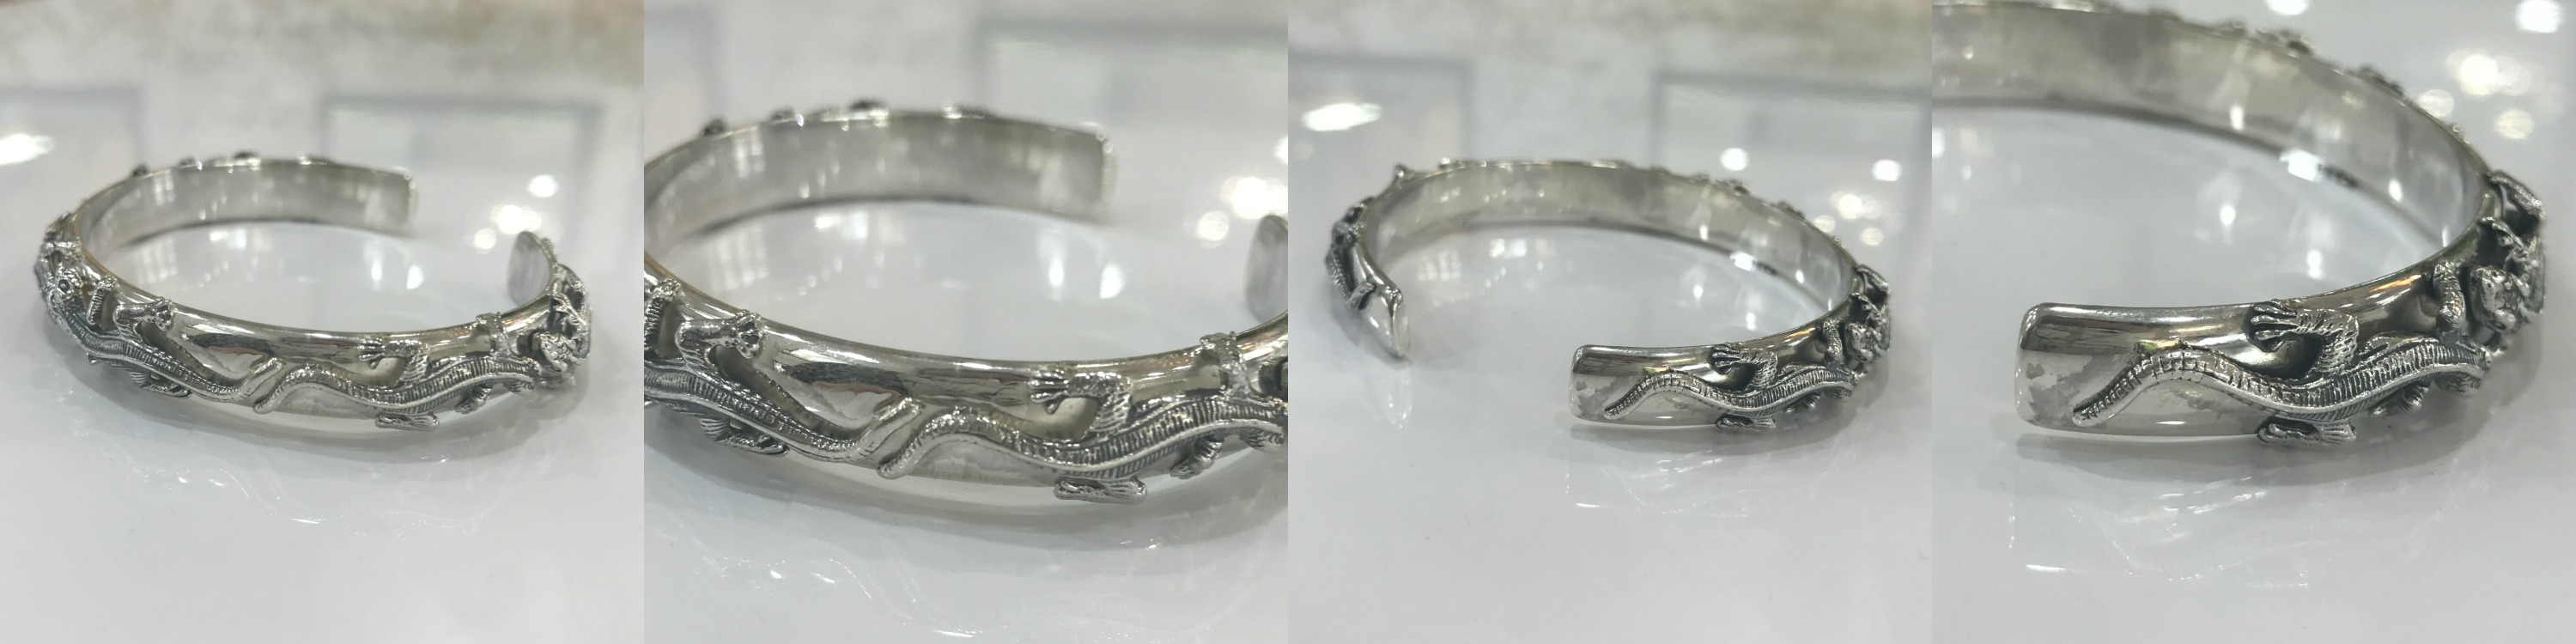 earth jewellery chekotin gallery diamonds element rings lyst with jewelry lizard ring